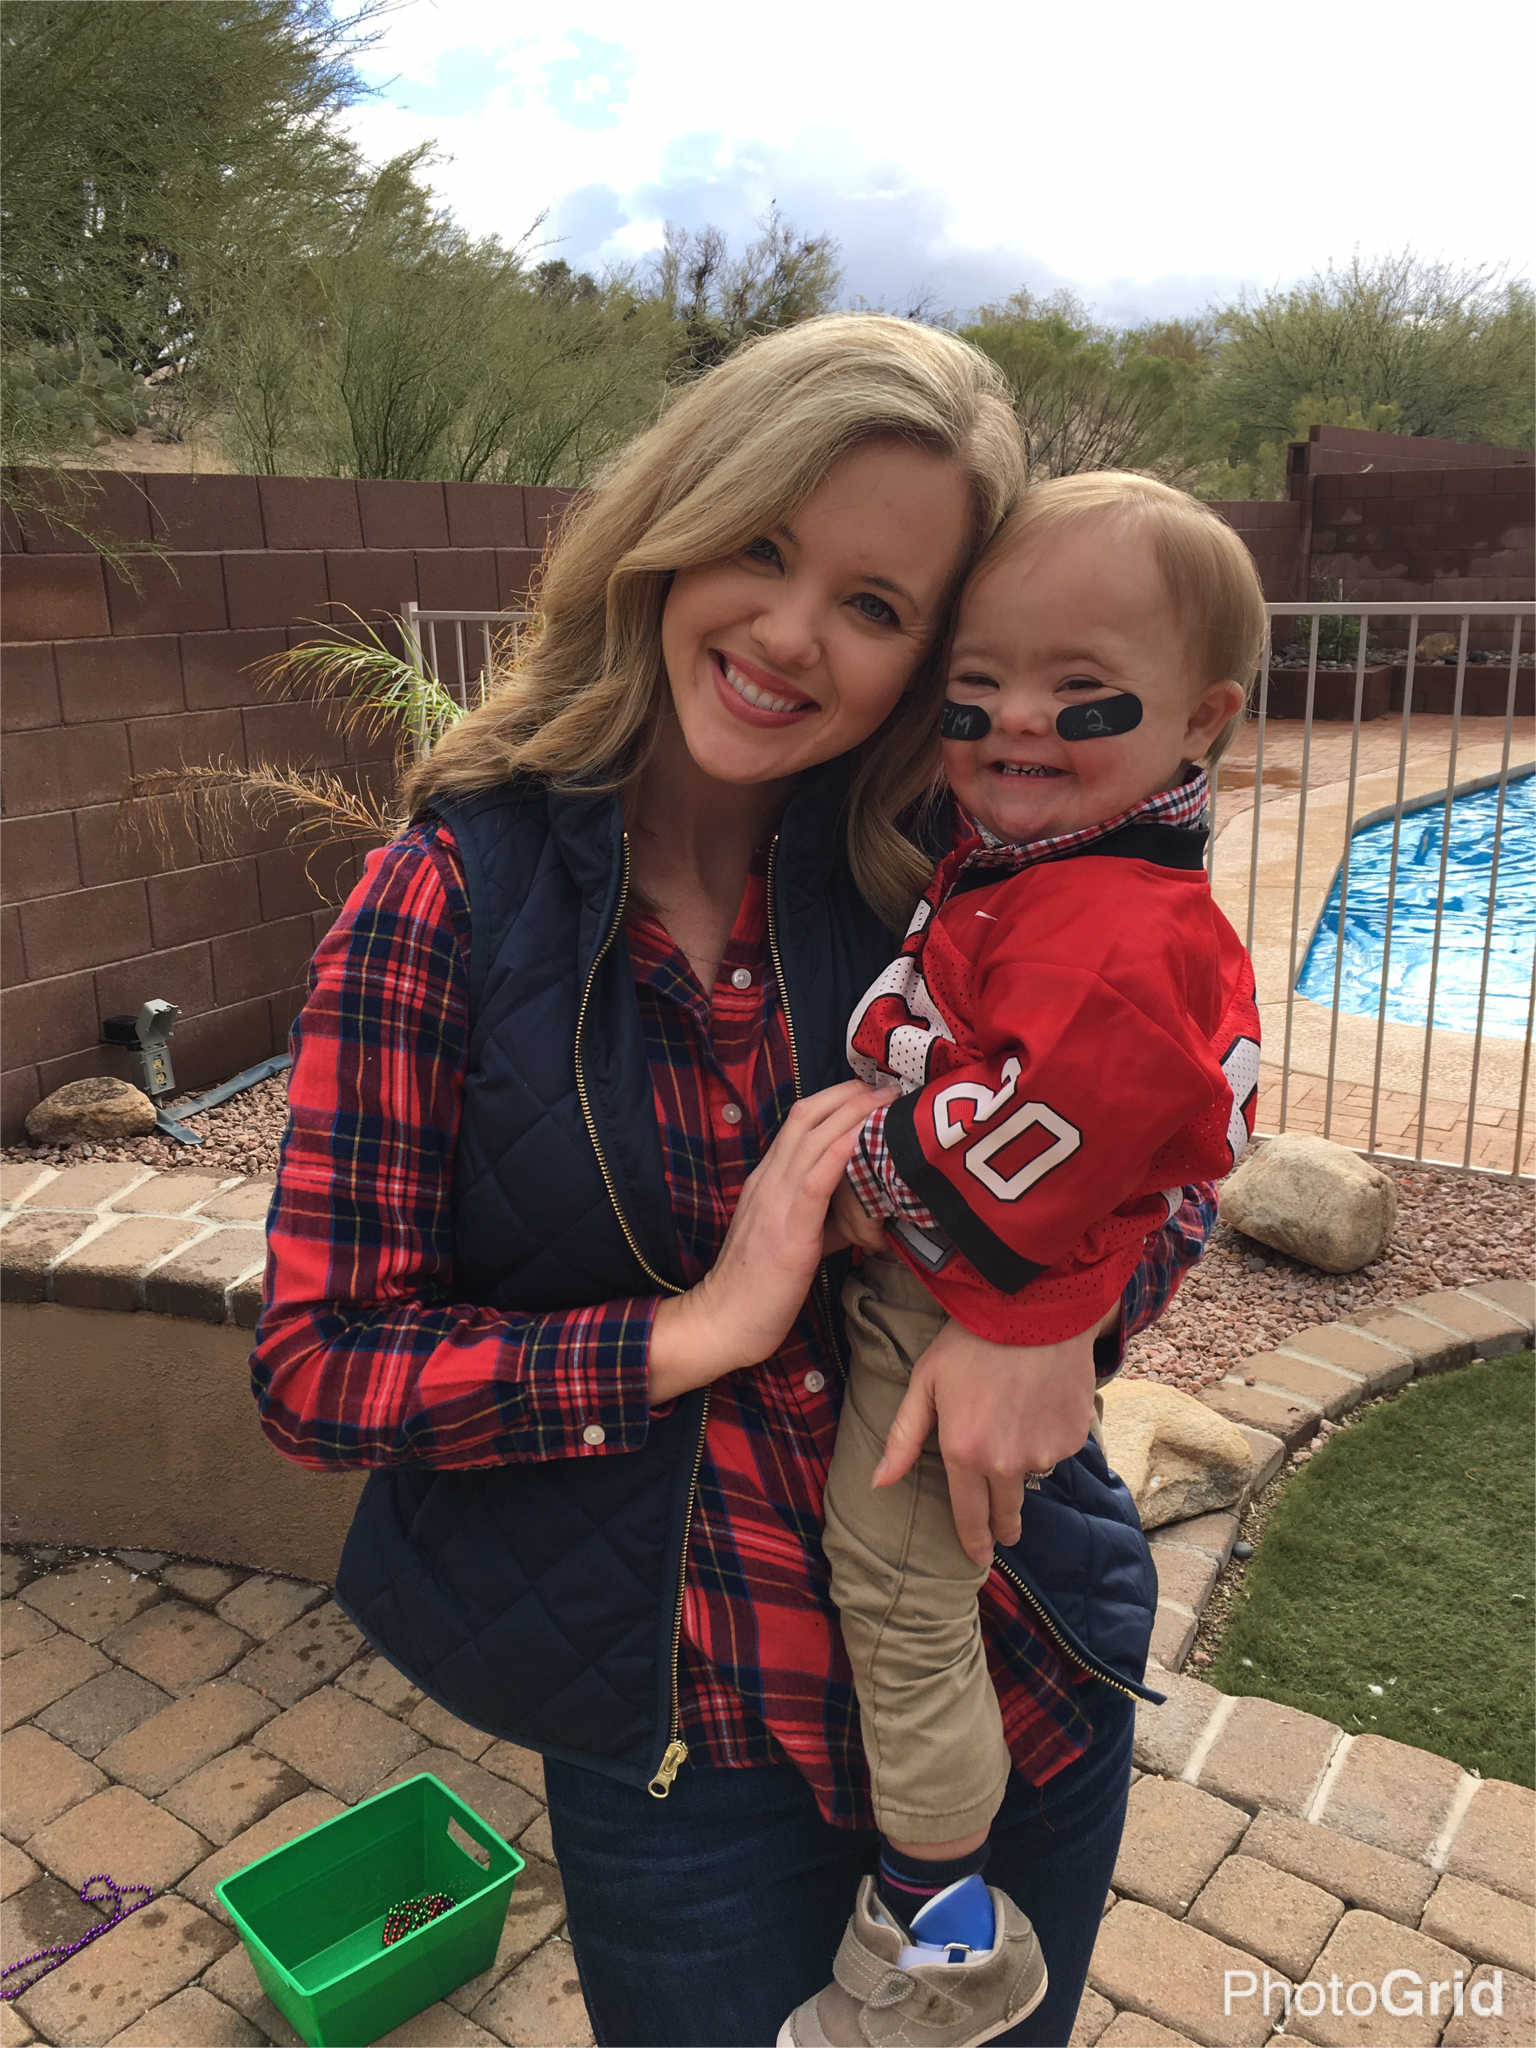 mom holding son with down syndrome on birthday